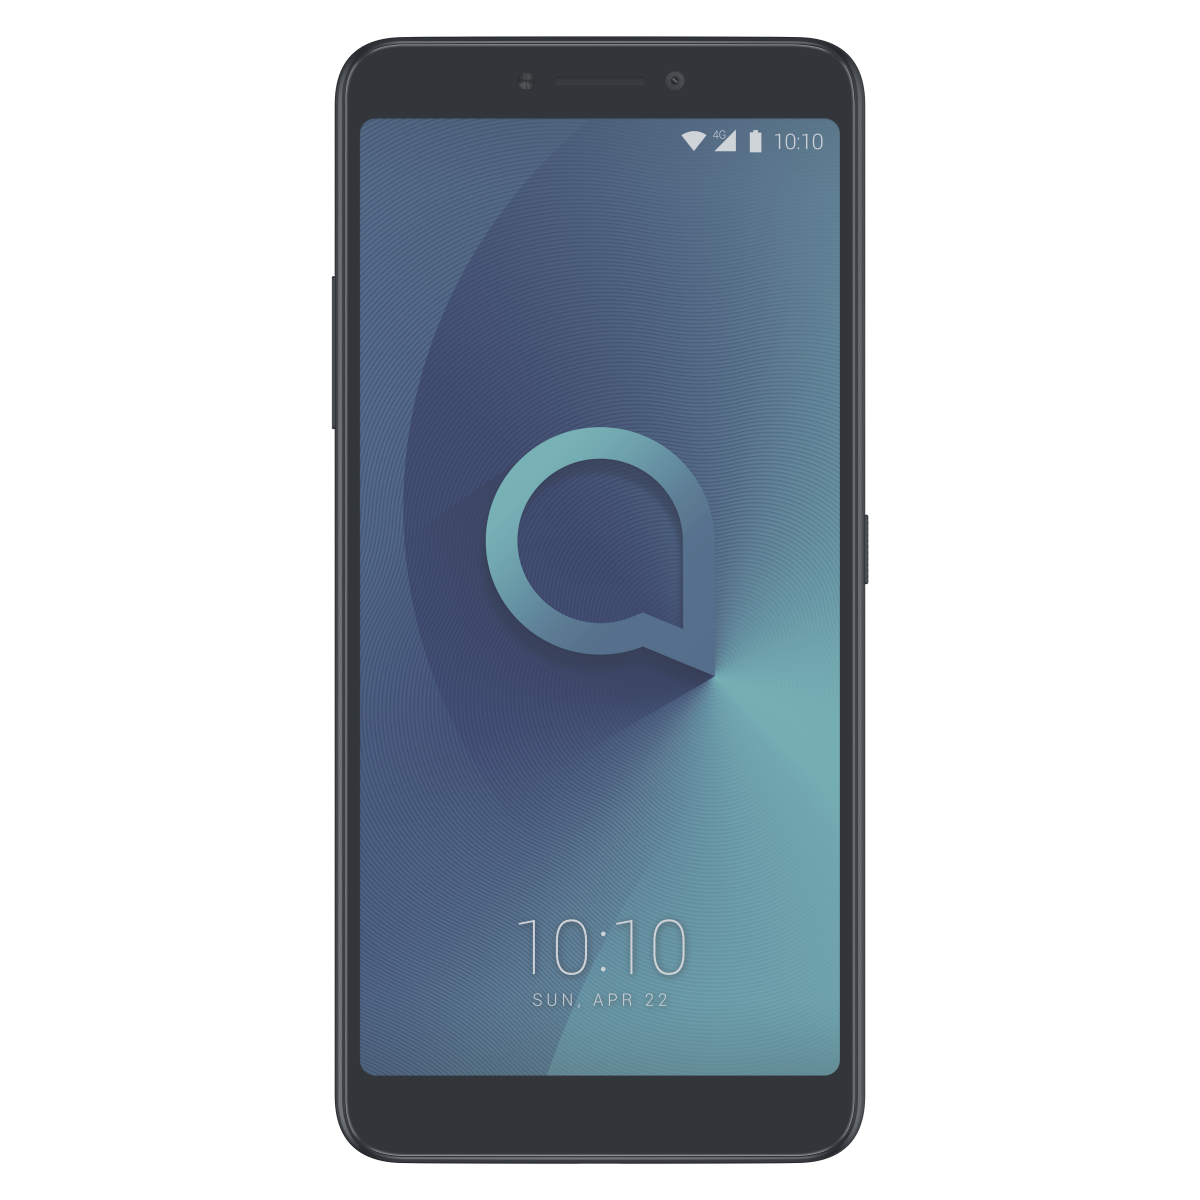 XDA Android: TCL Announces Alcatel 5 And Alcatel 3 Series